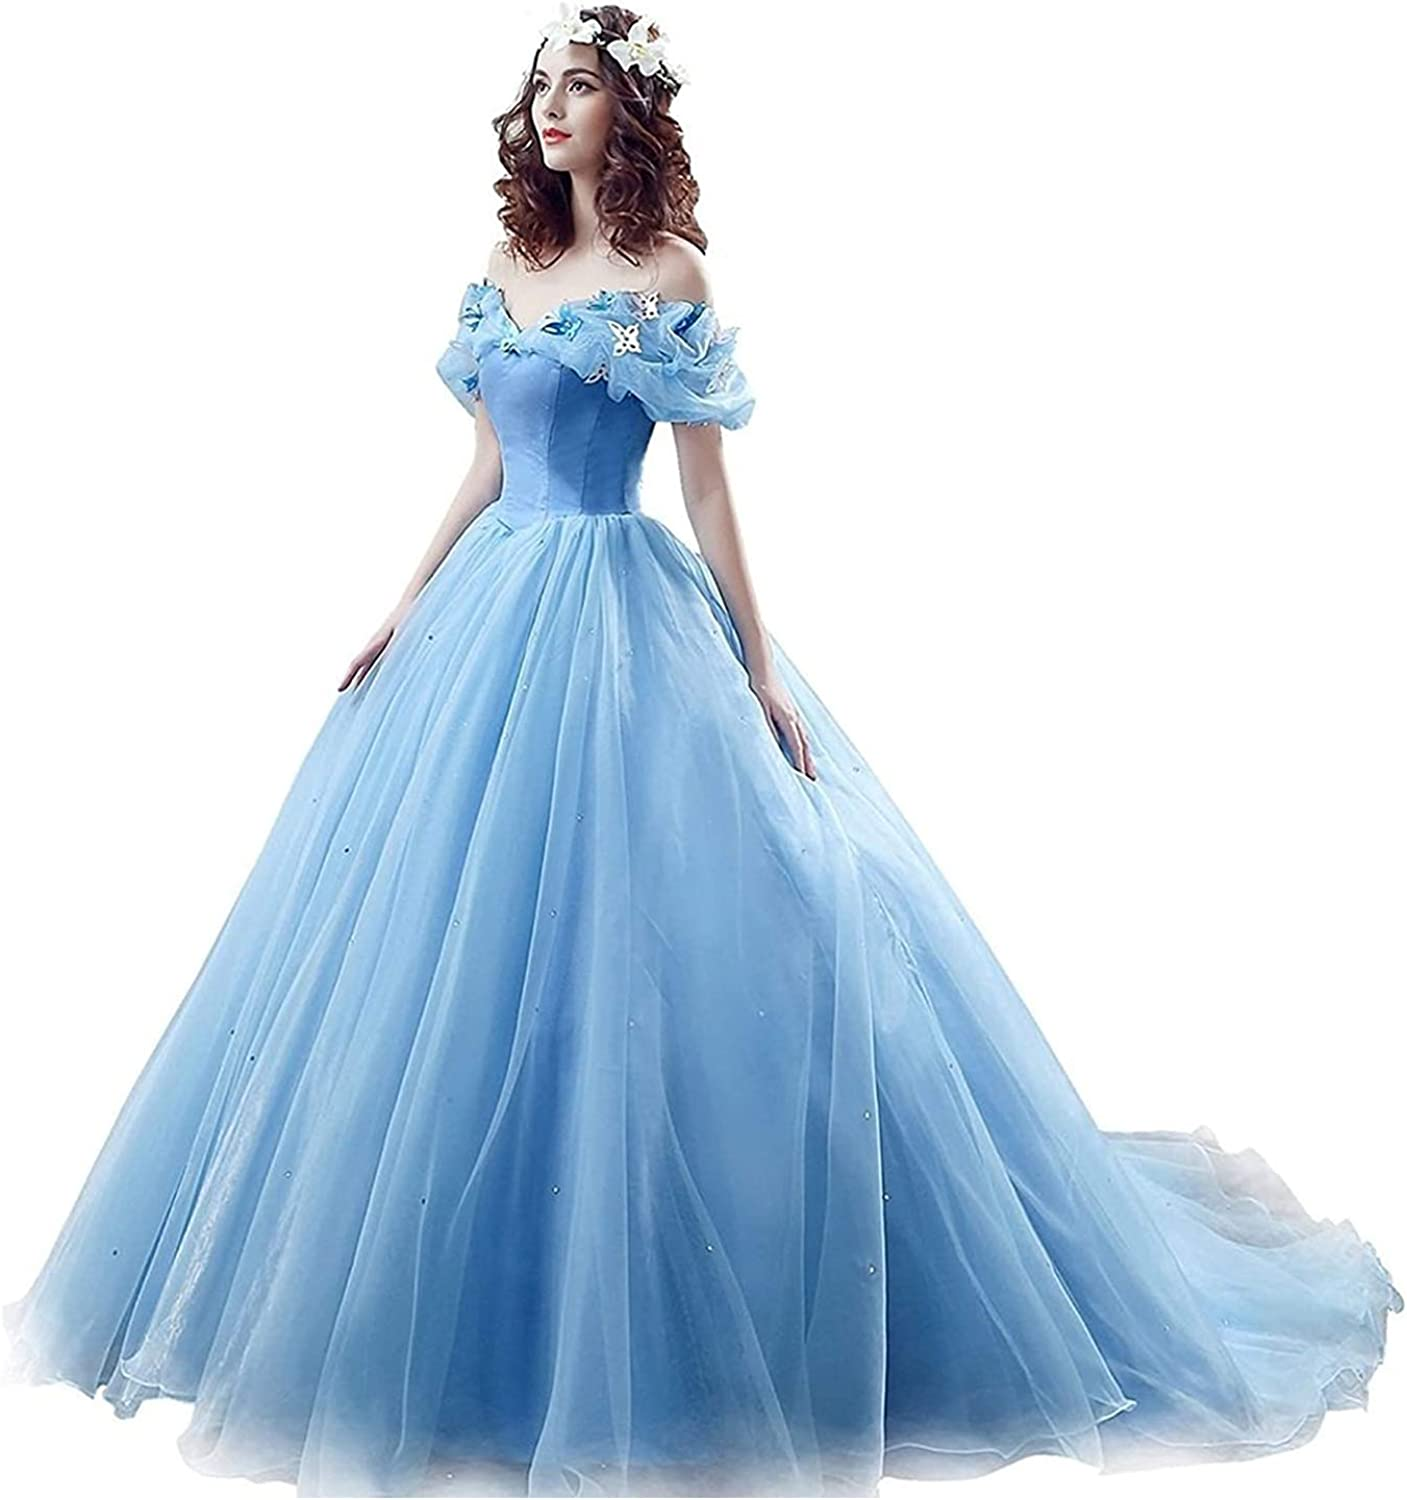 2021 Blue Ball Gown Prom Max 77% OFF Omaha Mall Dress New Cos Princess Movie Cinderella